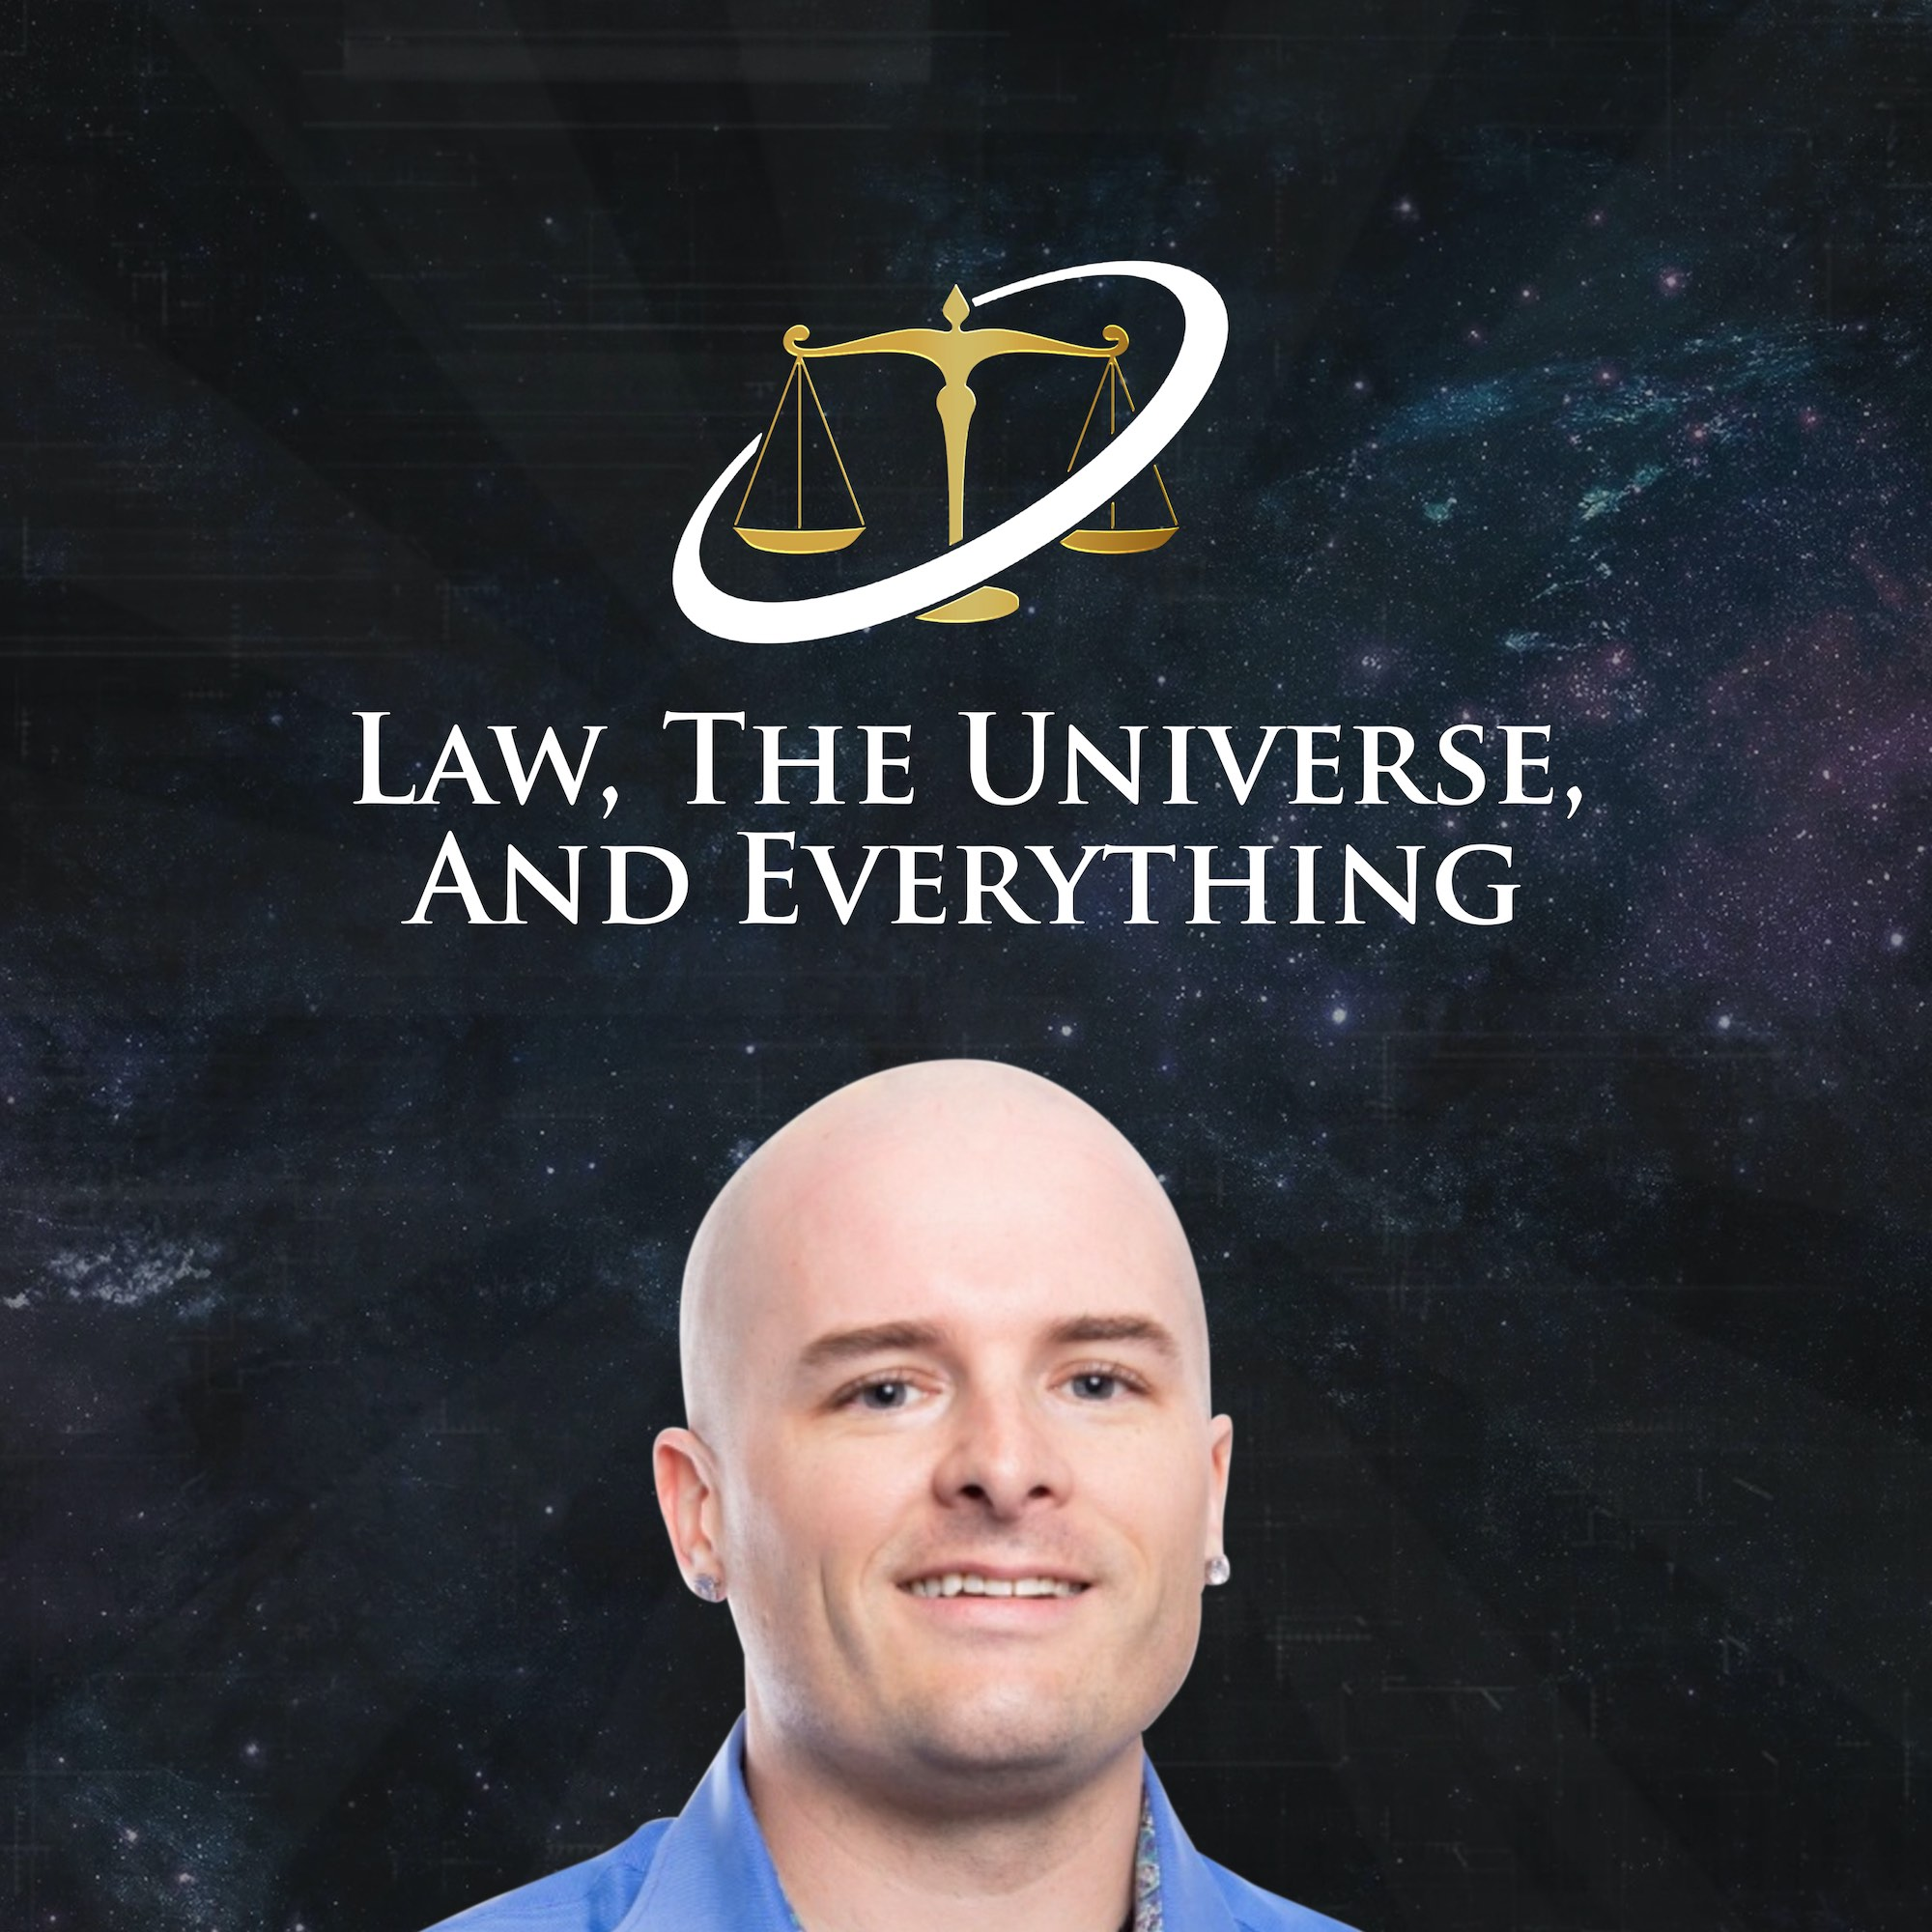 Show artwork for Law, The Universe, And Everything